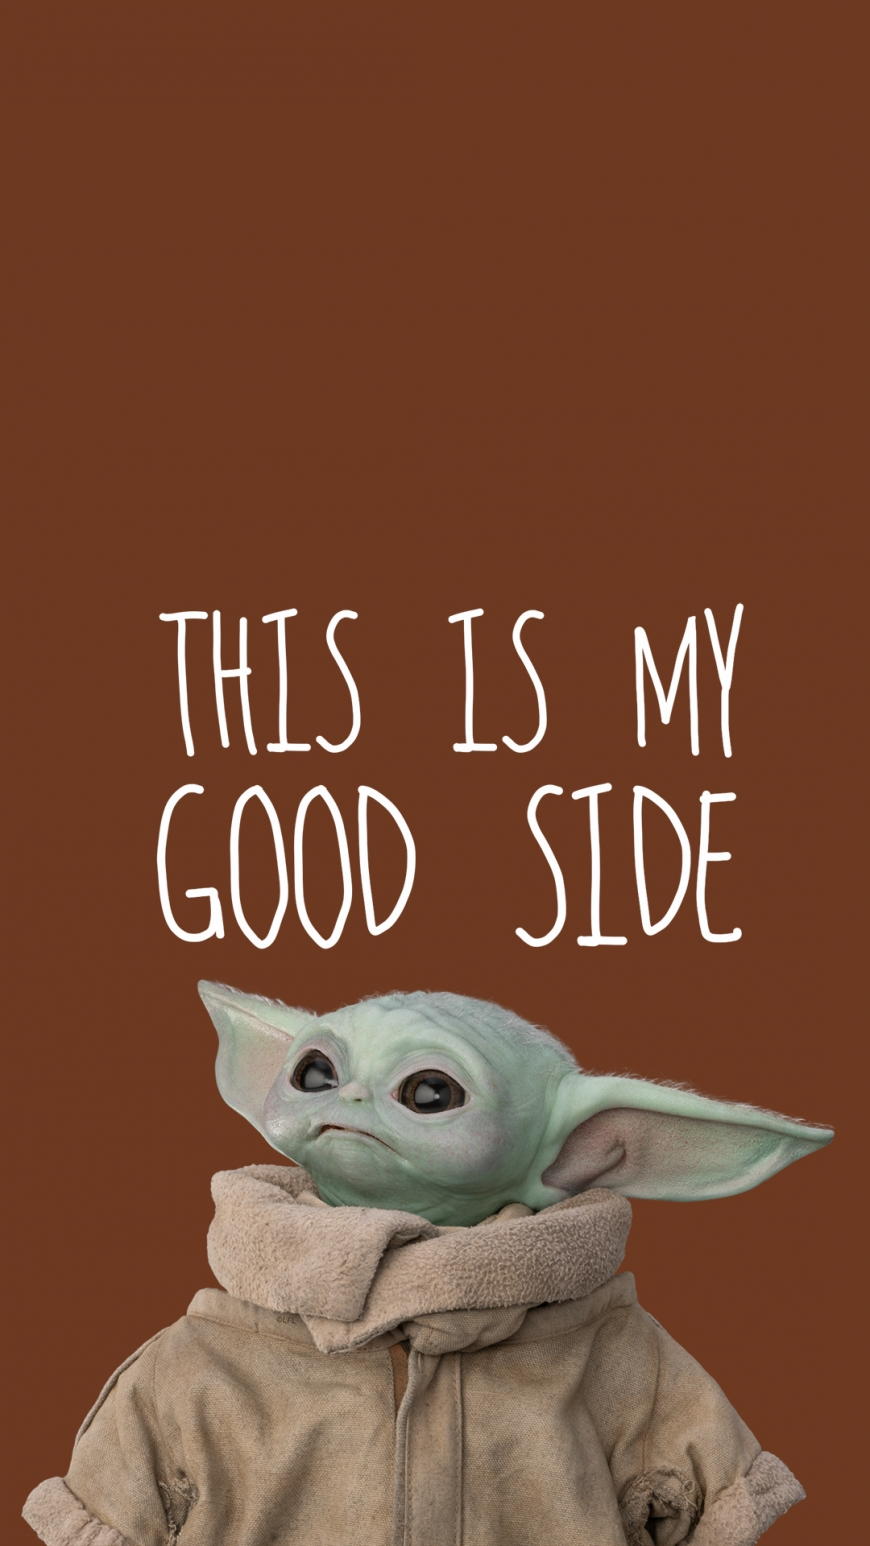 Baby Yoda This is my good side wallpaper